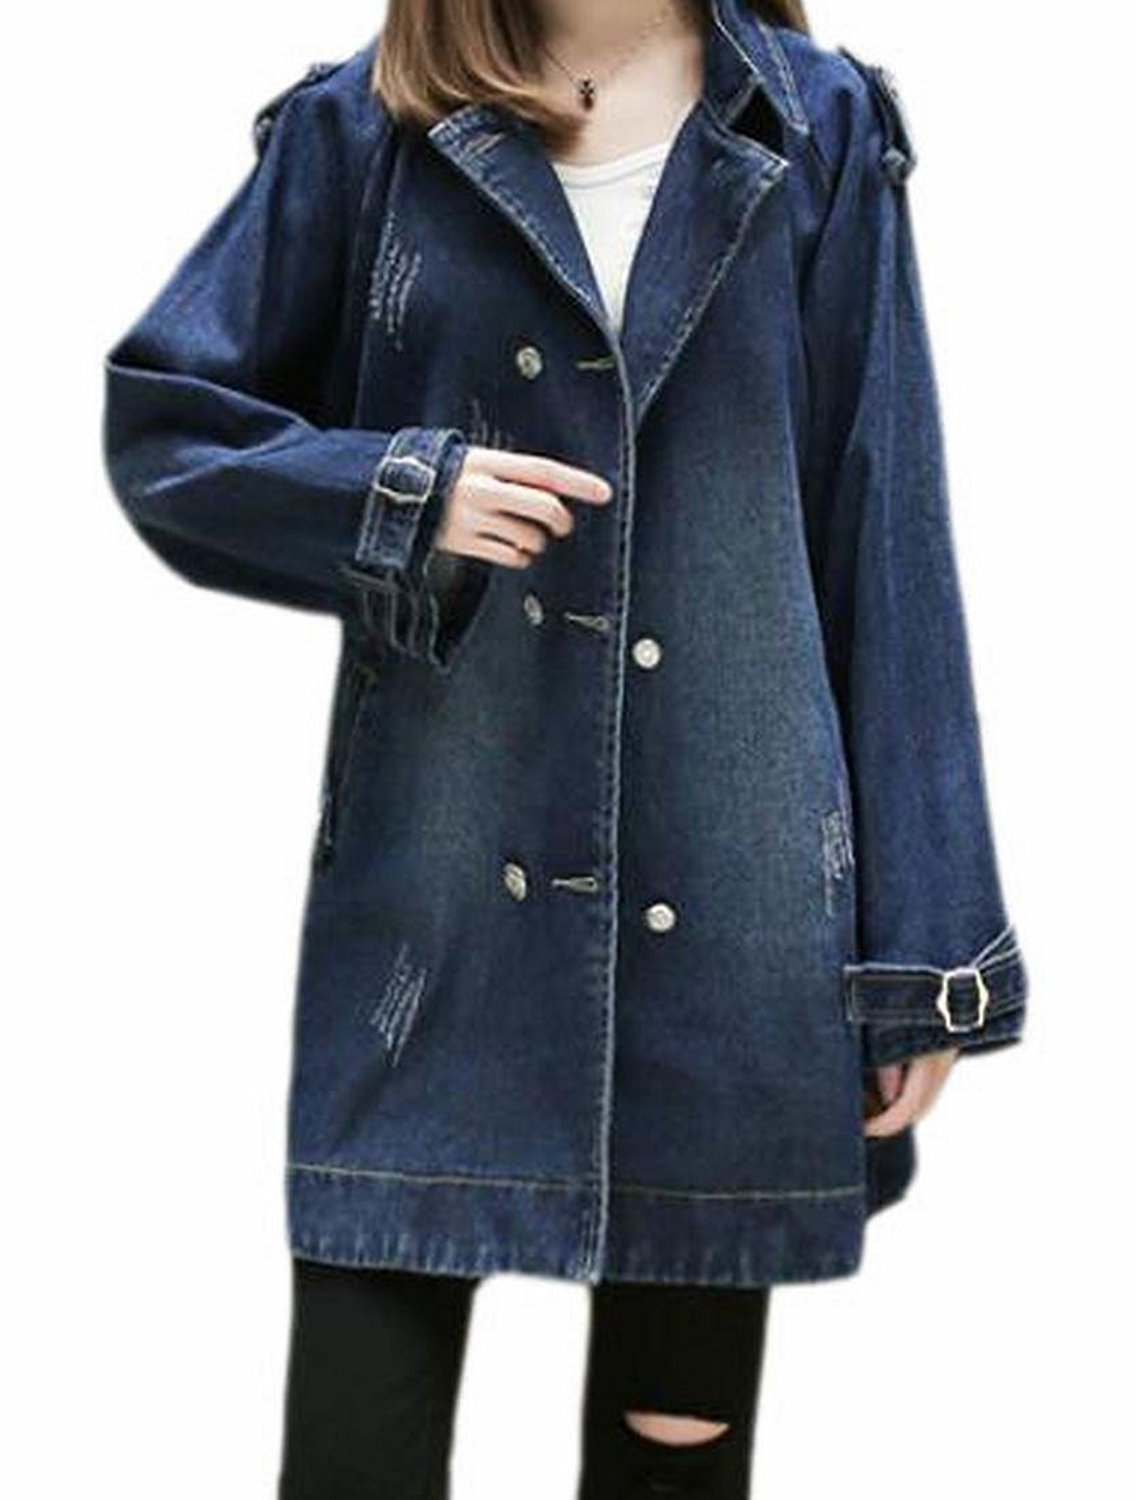 ONTBYB Womens Lapel Long Sleeve Double-Breasted Denim Jacket Trench Coat